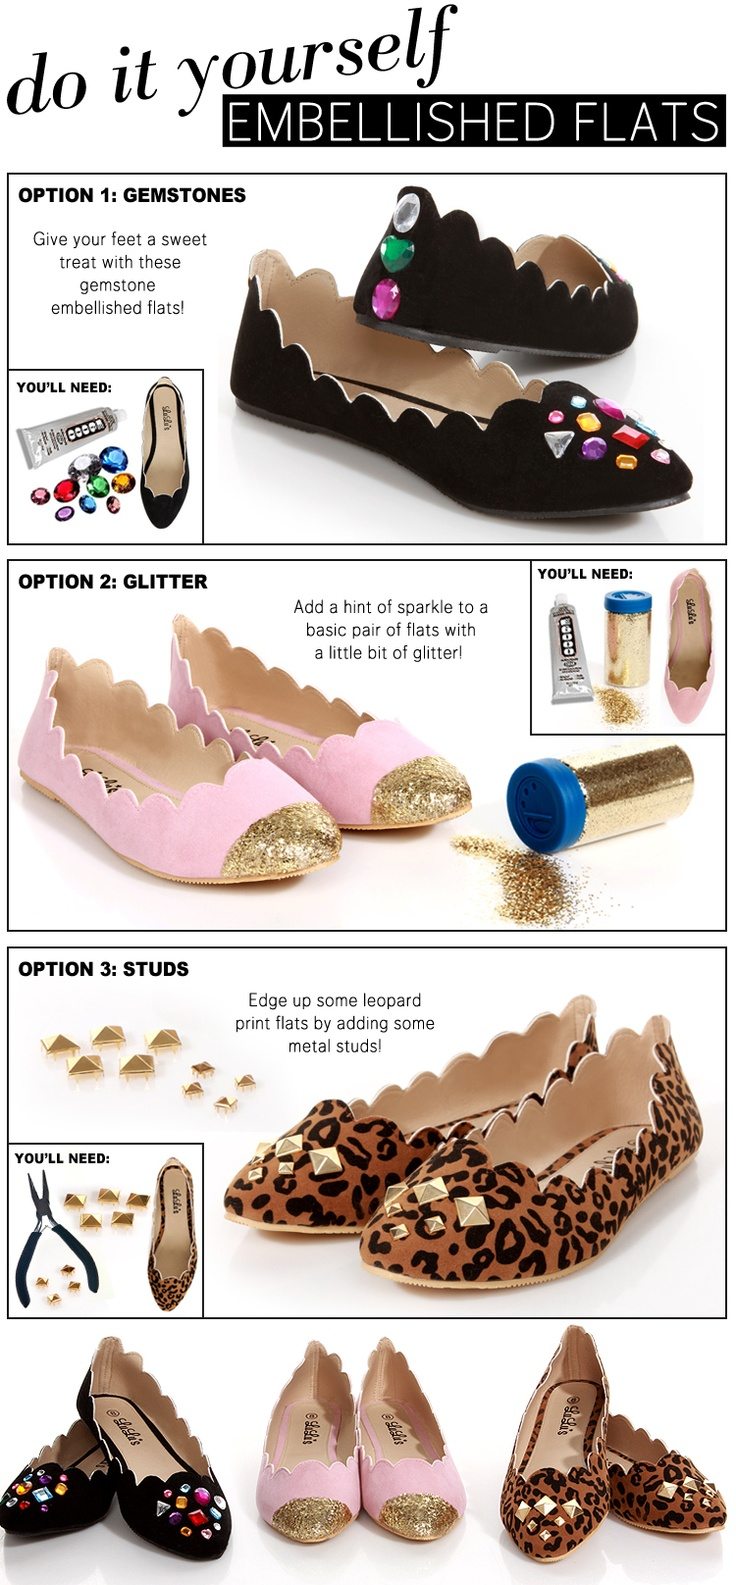 215 best accessorize with goodwill images on pinterest diy clothes diy embellished flats solutioingenieria Image collections